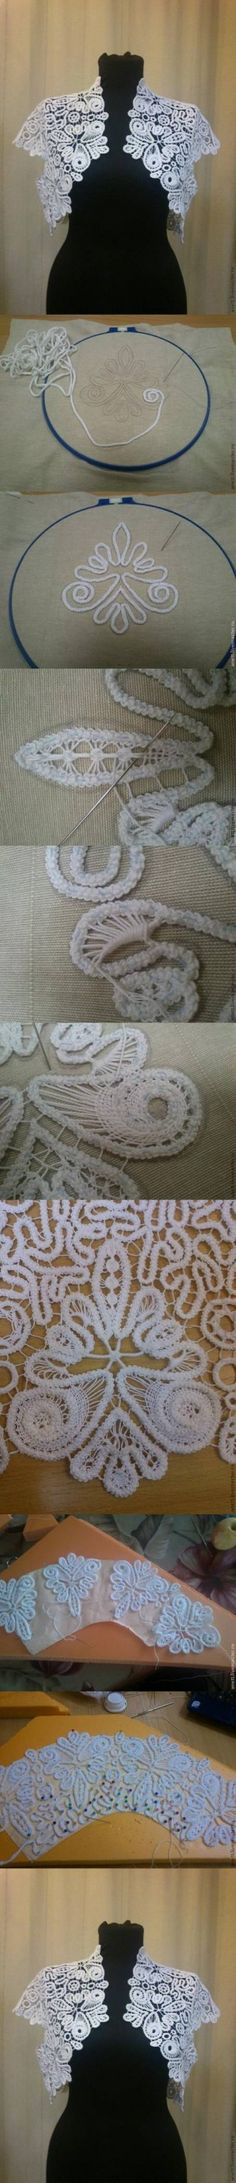 DIY Romanian Lace DIY Projects Shows the stages in Romanian point lace. Gilet Crochet, Freeform Crochet, Irish Crochet, Crochet Lace, Crochet Stitches, Lace Patterns, Embroidery Patterns, Hand Embroidery, Sewing Patterns